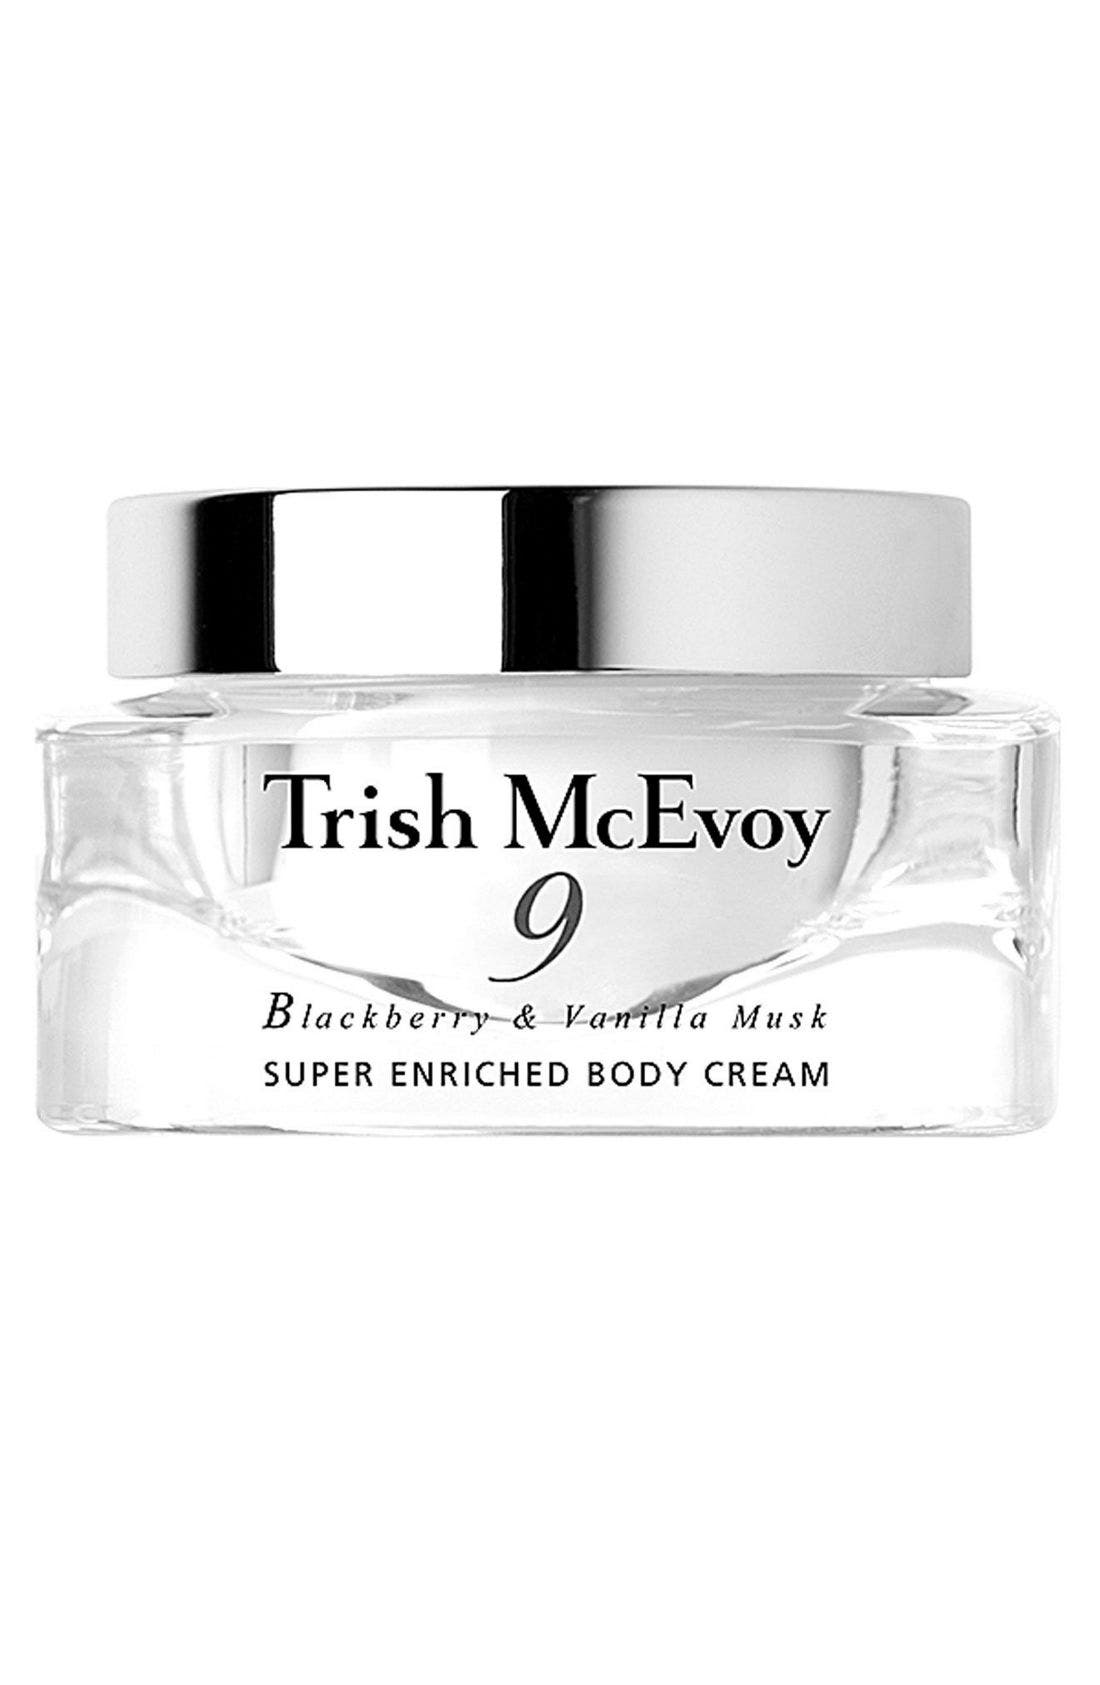 Trish McEvoy 'No. 9 Blackberry & Vanilla Musk' Super Enriched Body Cream